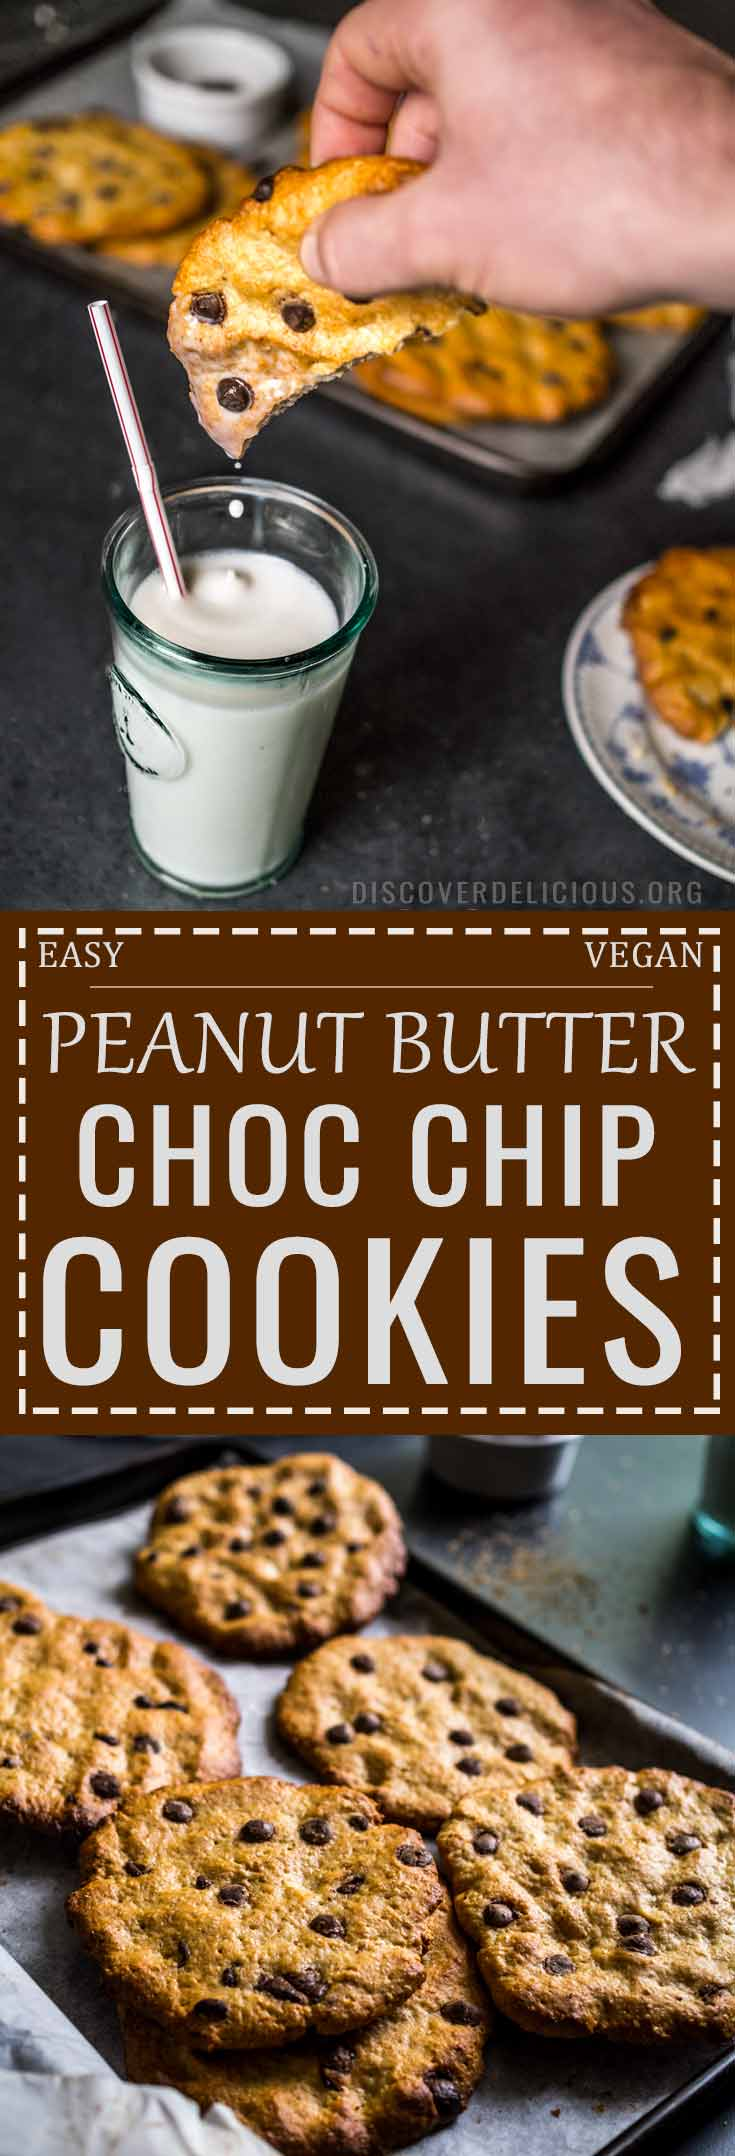 These soft and gooey Peanut butter + Chocolate Chip Cookies are soft, indulgent, easy to make and 100% vegan! No obscure ingredients either. #cookie #recipes #easy #recipe #choc #oats #chewy #crunchy #oatmeal #eggless